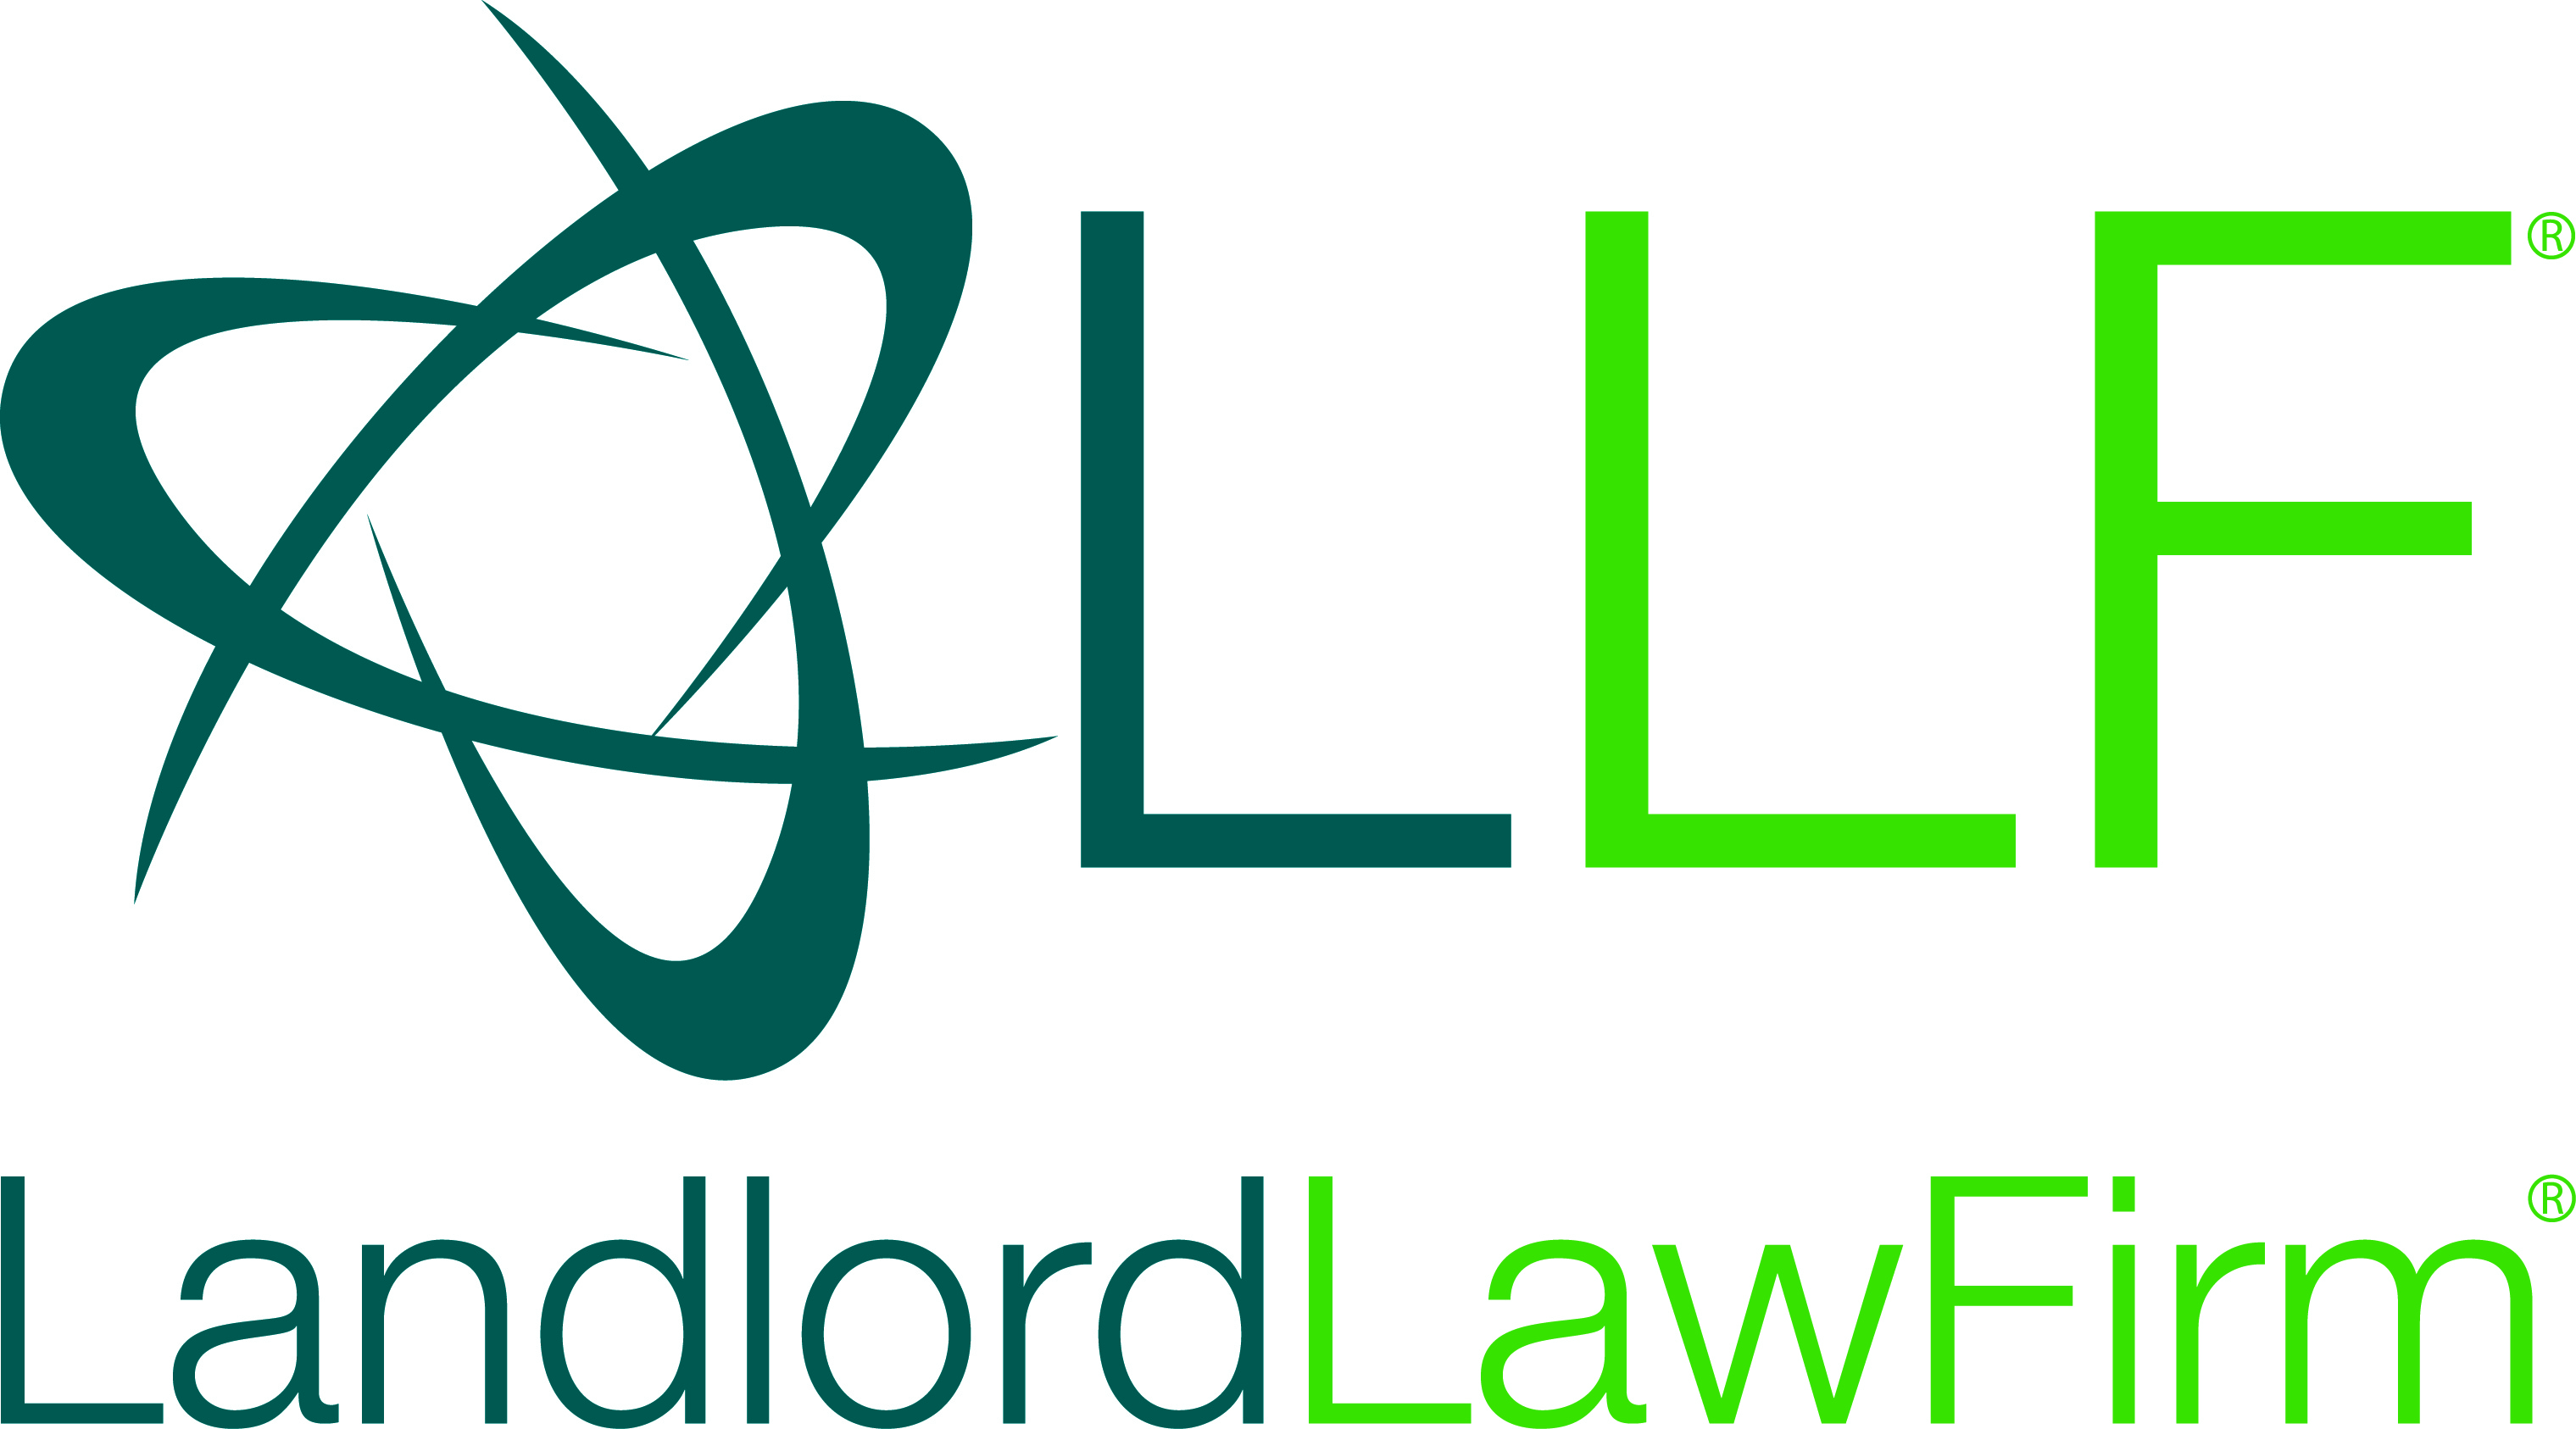 Landlord Law Firm